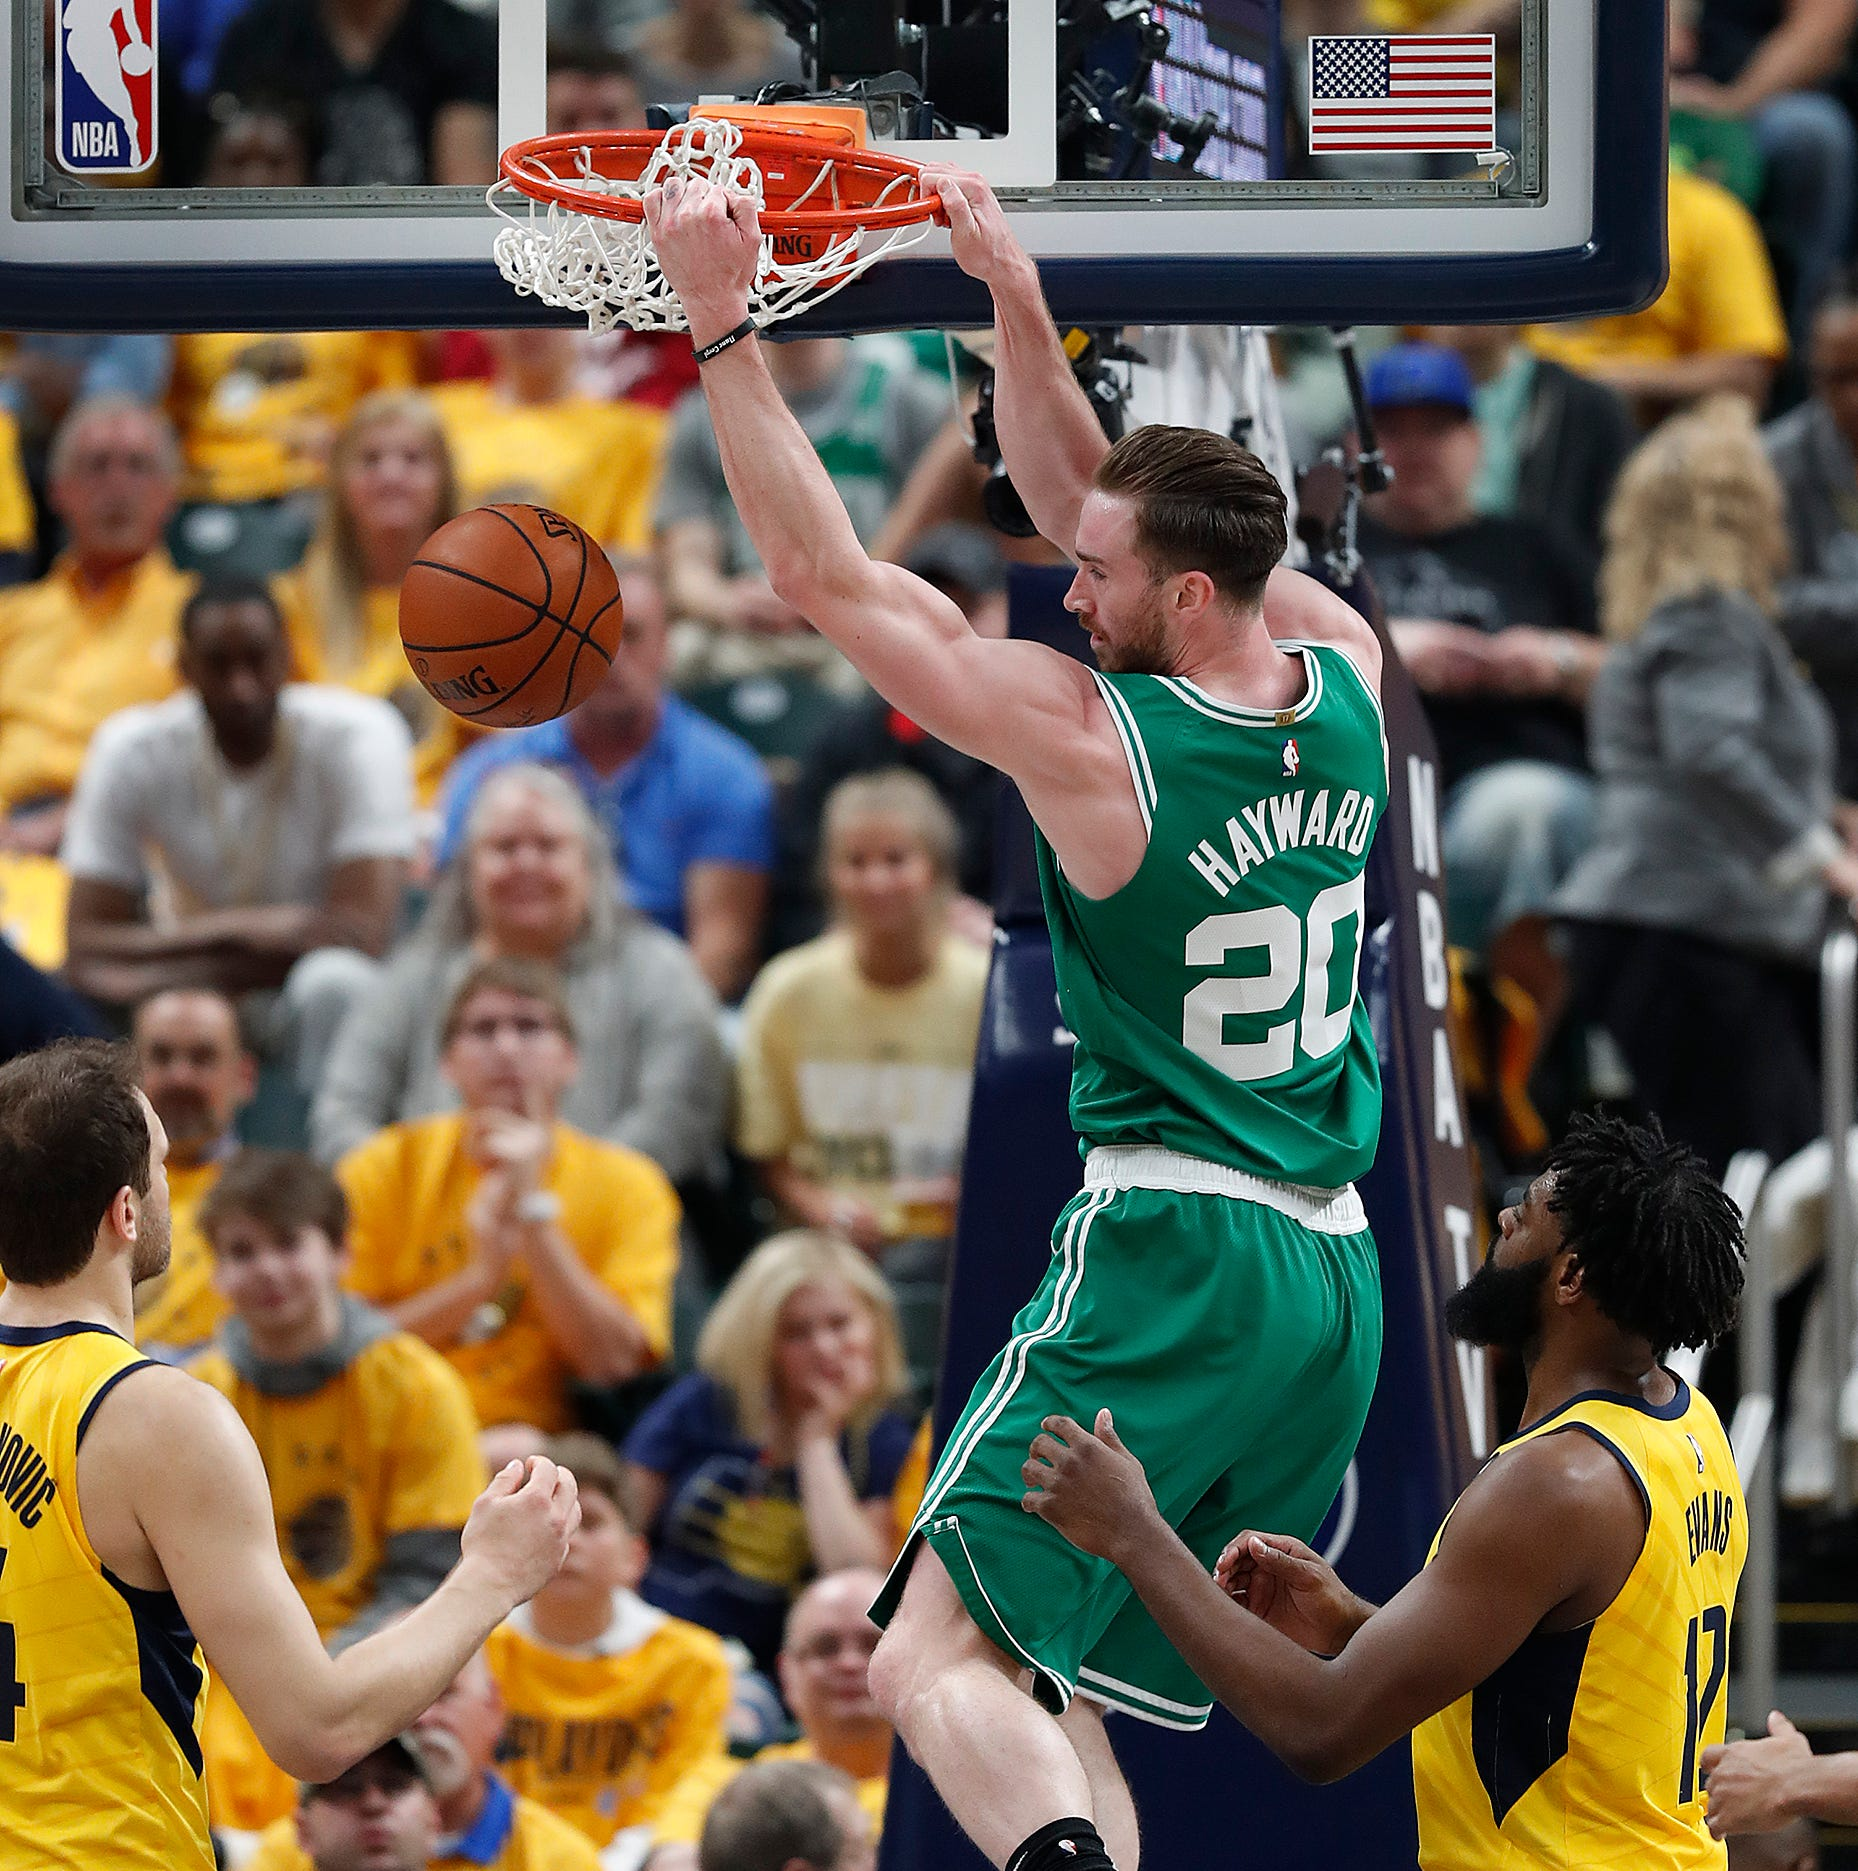 Doyel: Gordon Hayward leads Celtics' sweep of his childhood team, the Pacers